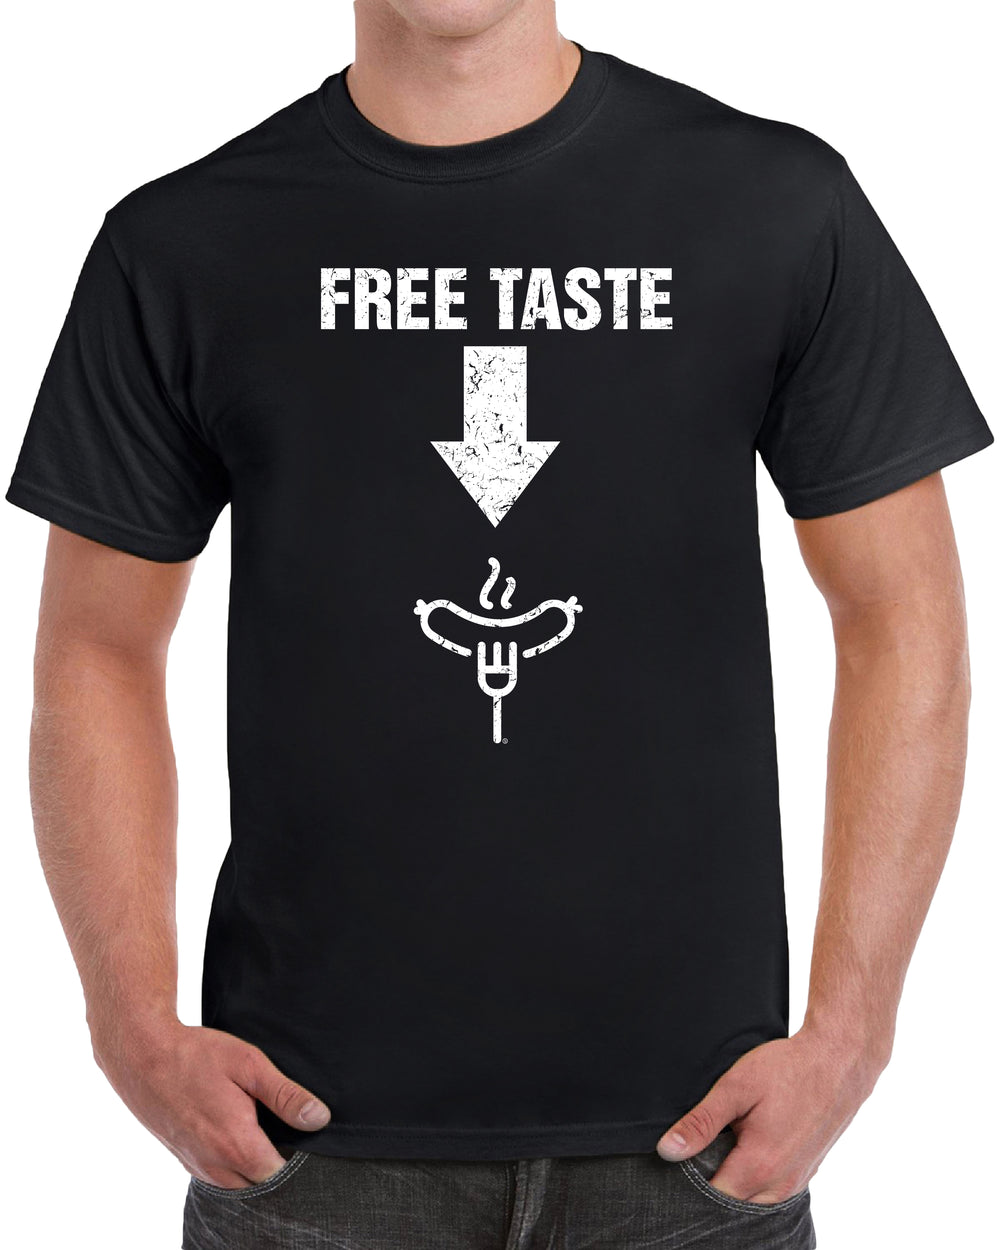 Free Taste Here - Distressed Print